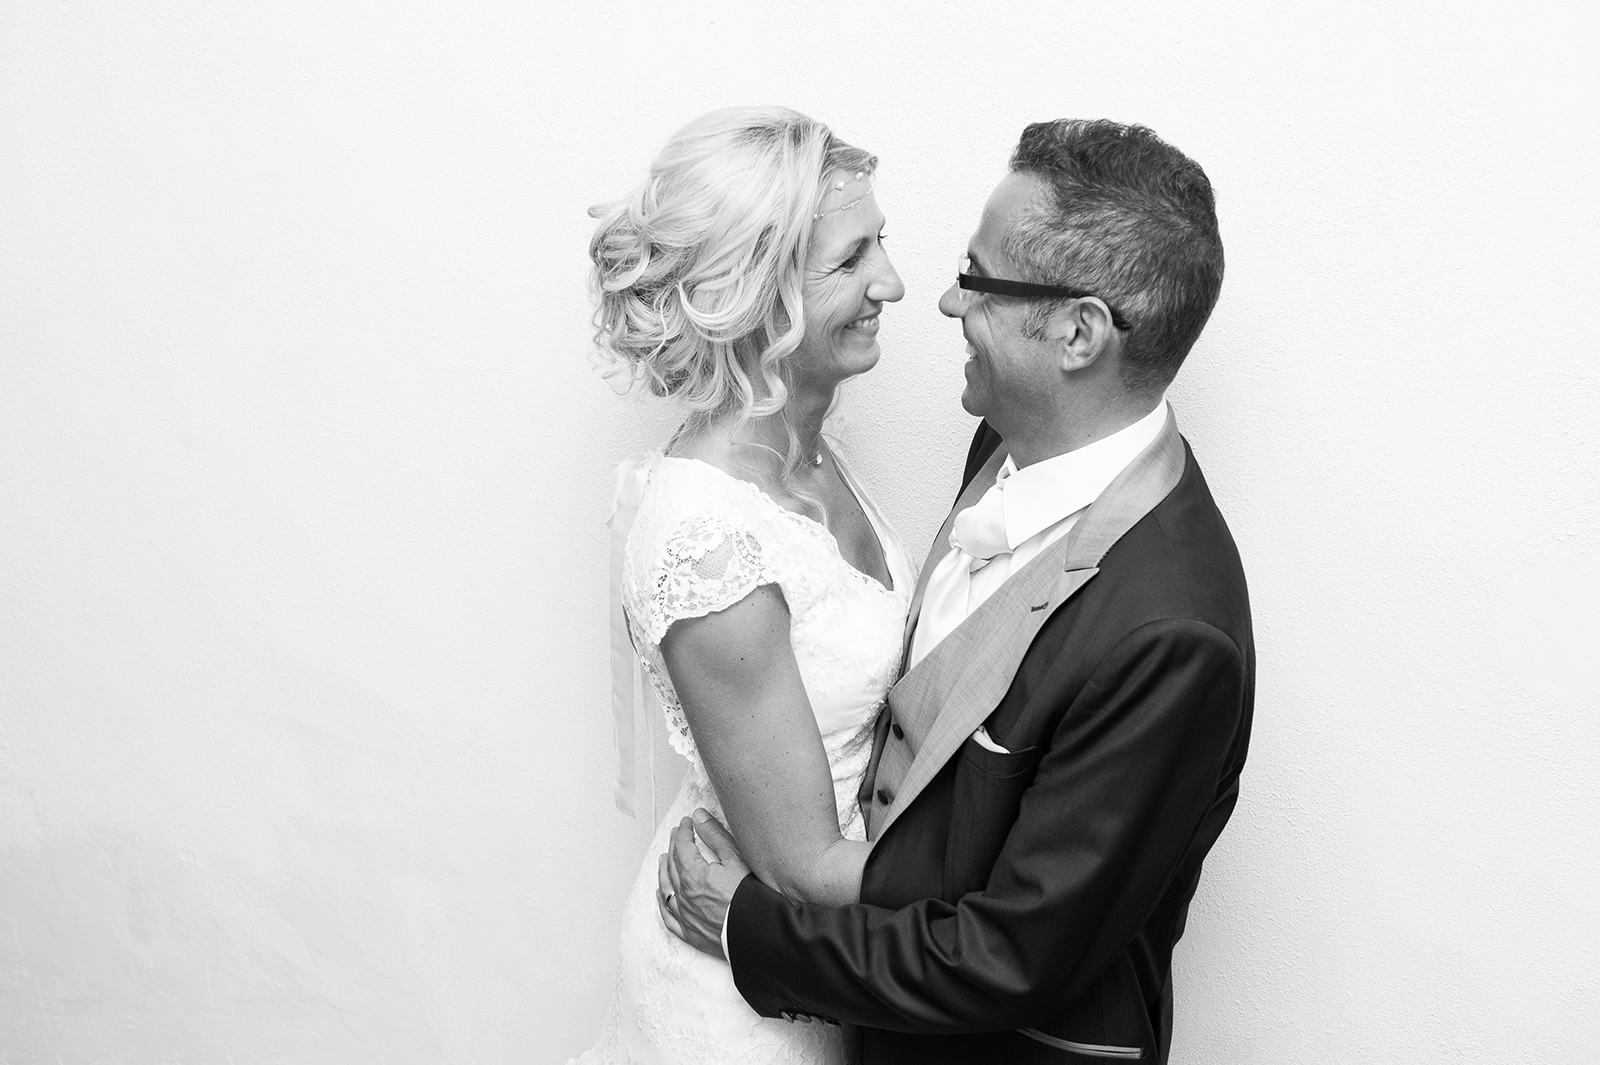 Peggy-Victor-photo-mariage-sabrina-godemert-photographe-seine-et-marne101